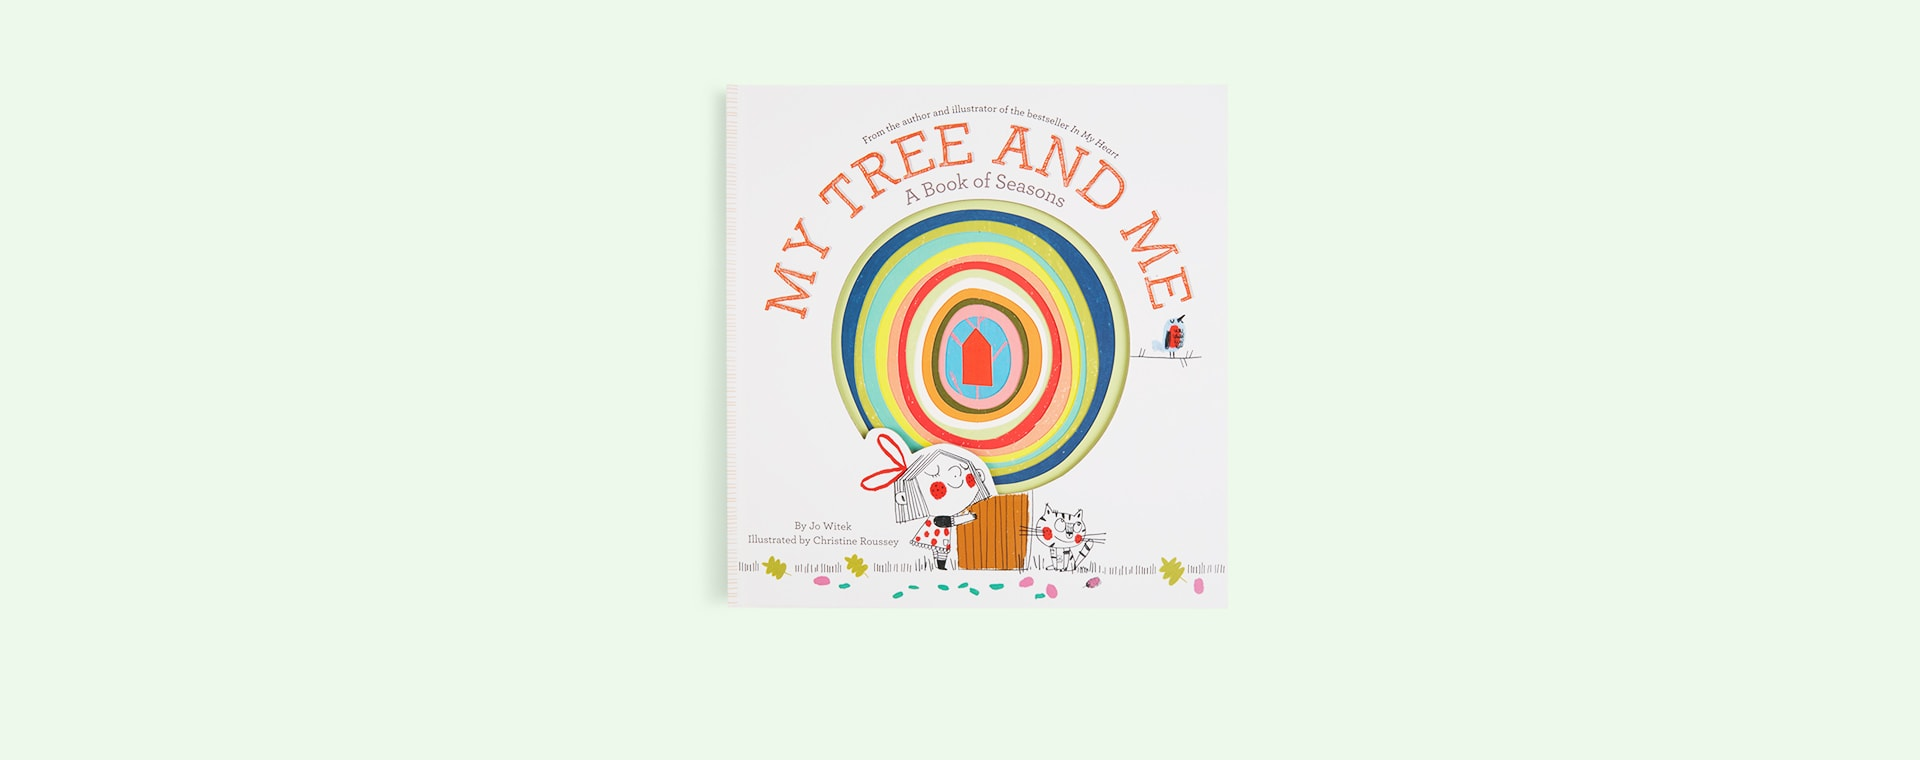 White Abrams & Chronicle Books My Tree And Me